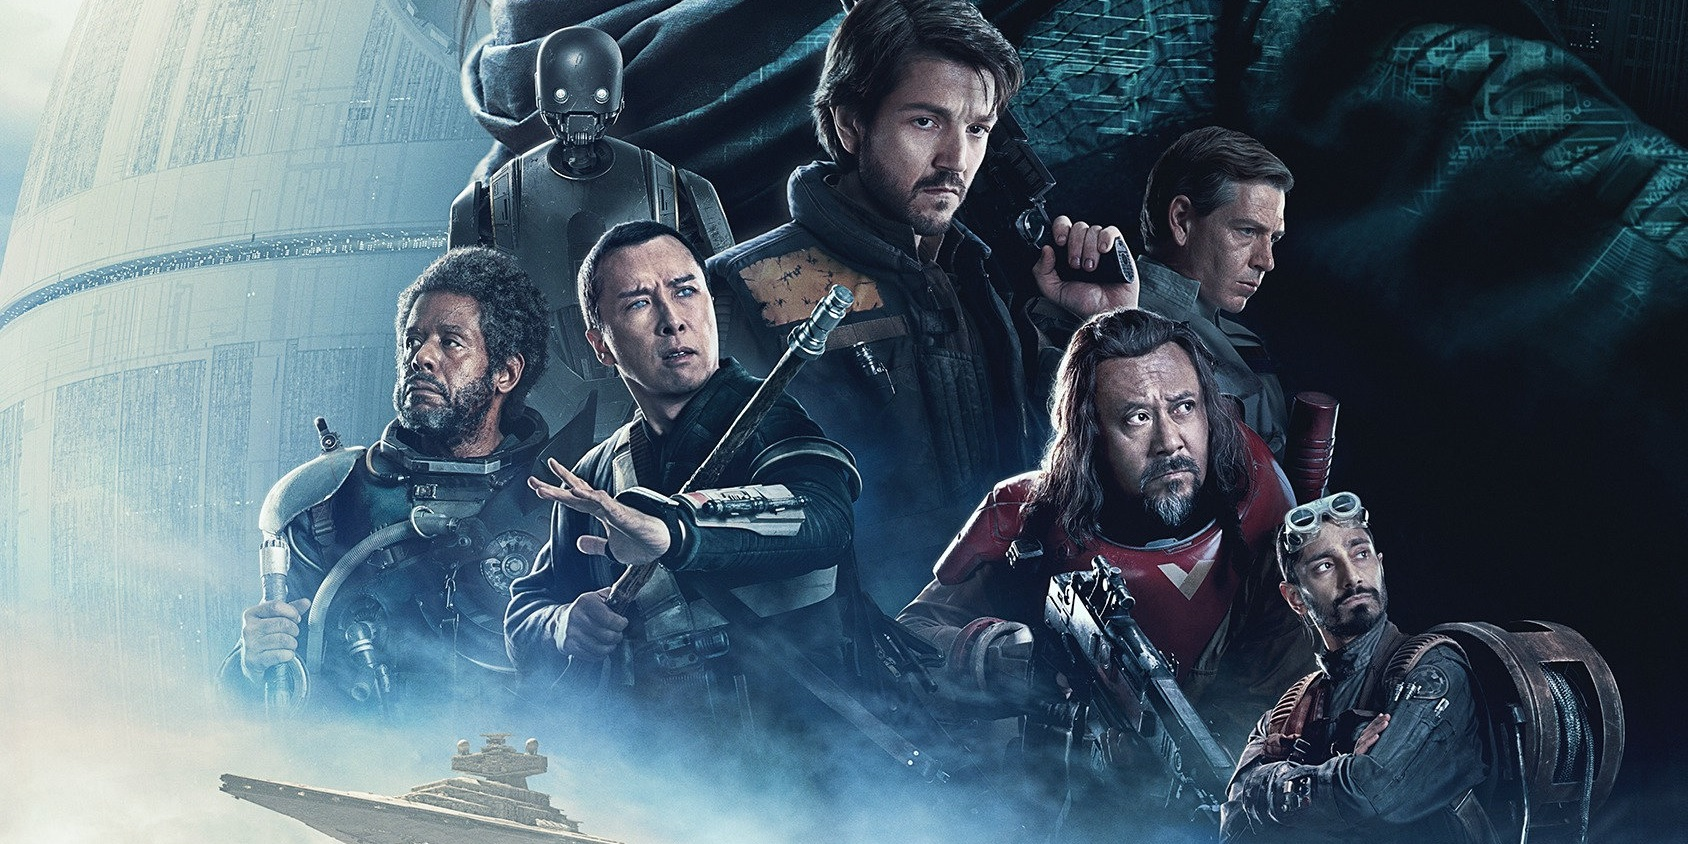 Star Wars: Rogue Oneu2019s Rebels Take on Stormtroopers in New ...